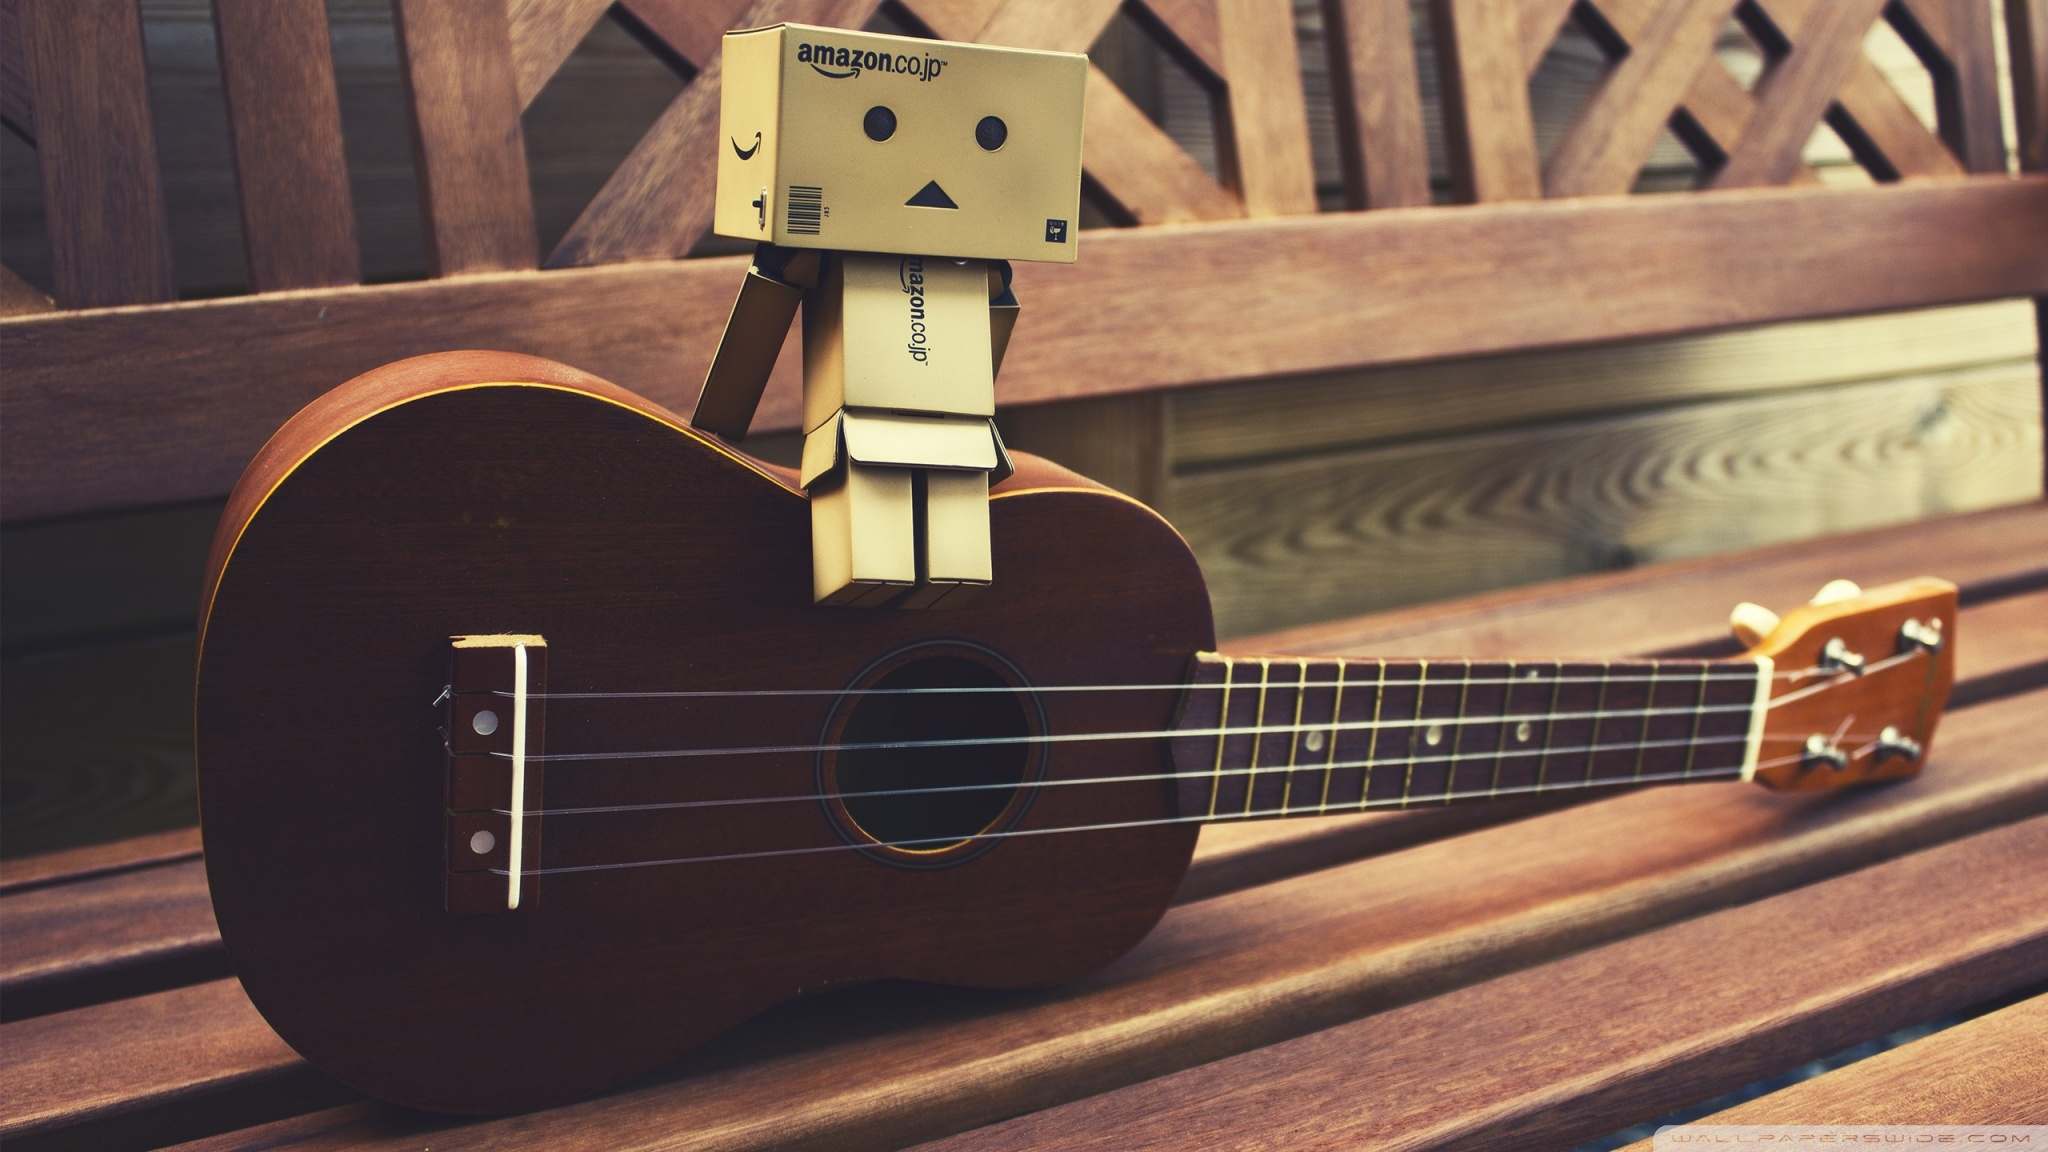 Cute Ukulele Wallpaper Danbo Guitar 4k Hd Desktop Wallpaper For 4k Ultra Hd Tv